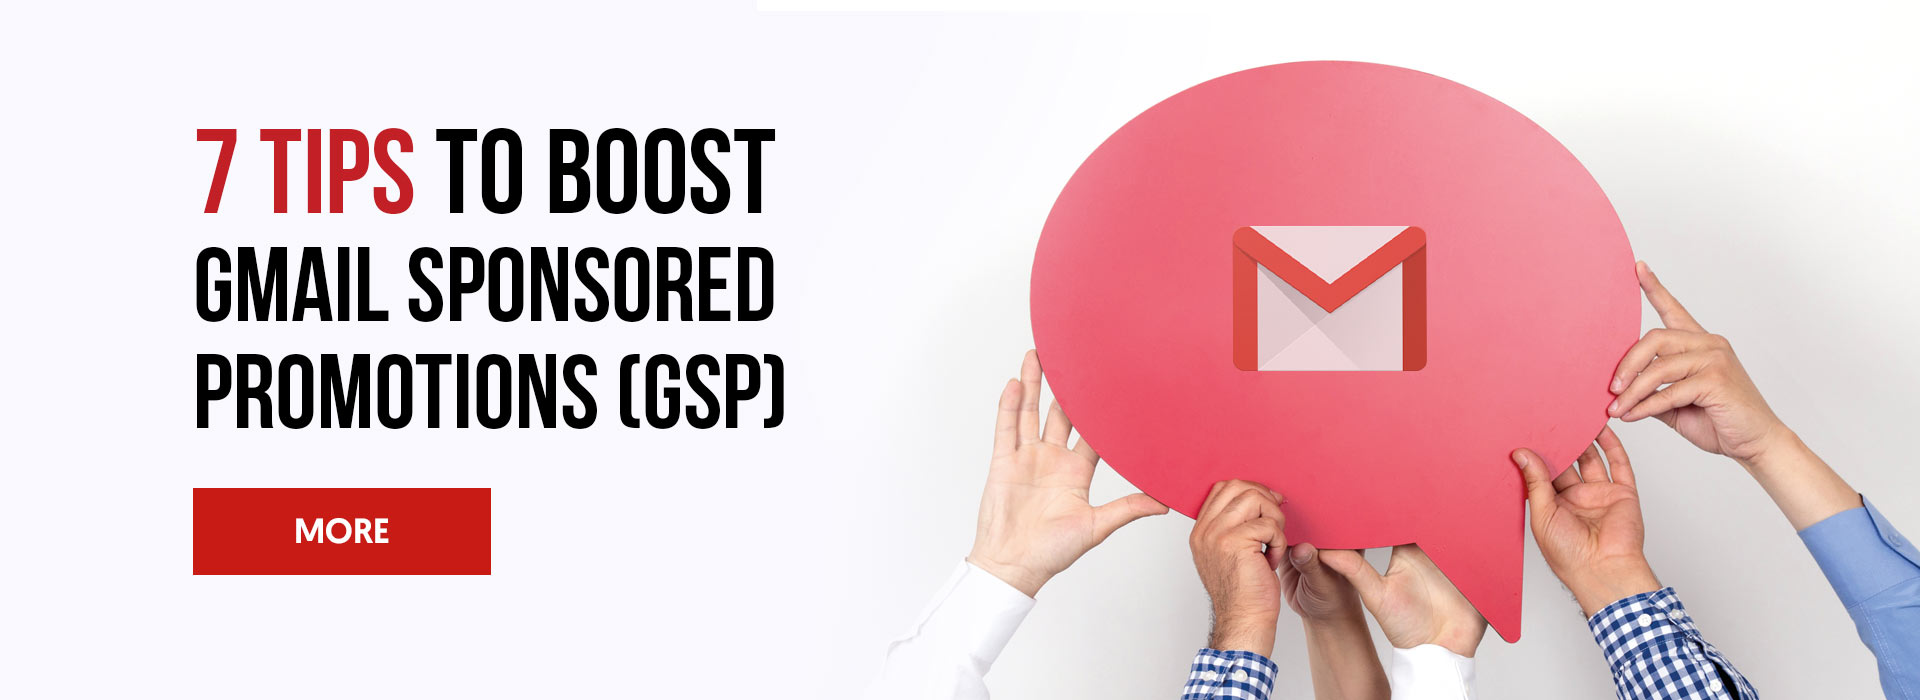 7 Tips to Boost Gmail Sponsored Promotions (GSP)